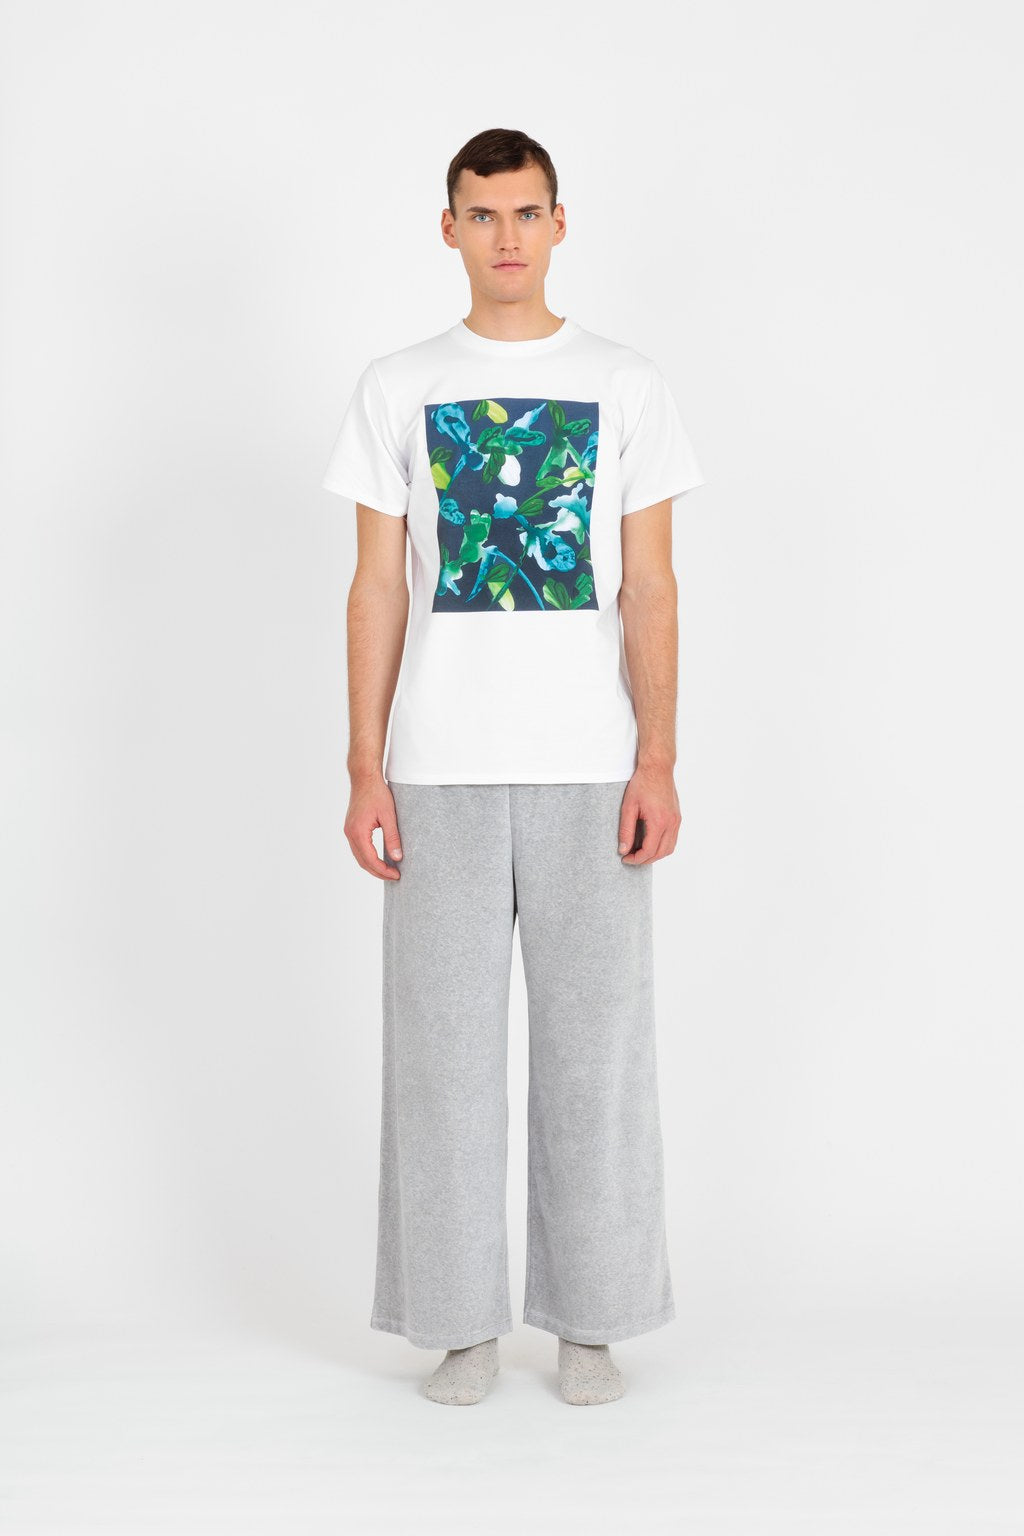 Tom t-shirt in Ocean print